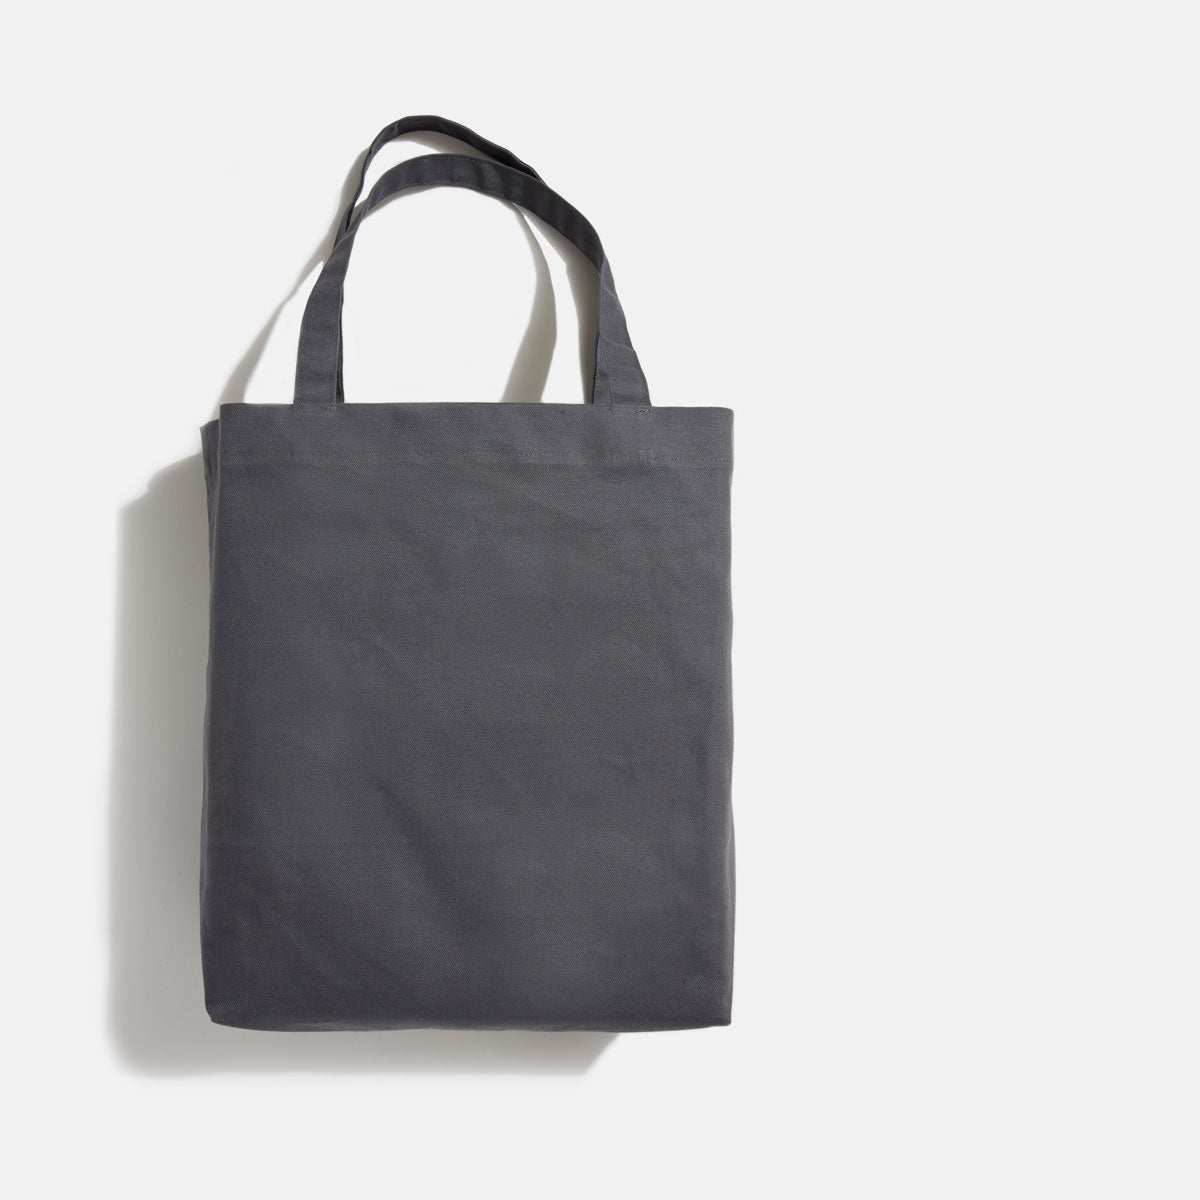 Grand tote charbon blank